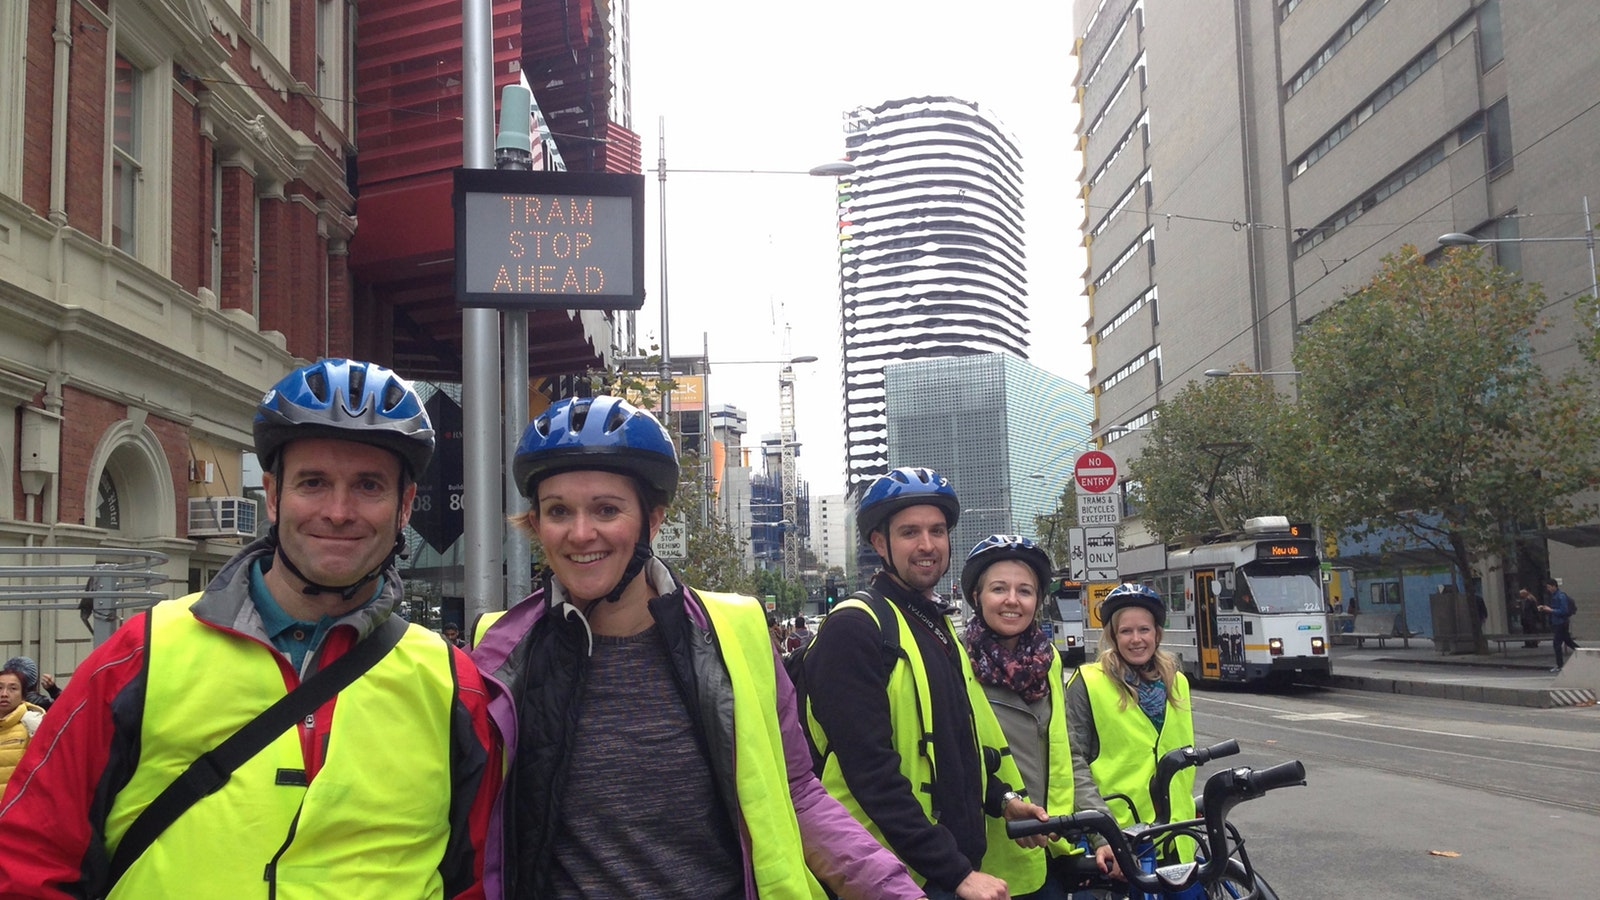 riders in front of building with a face